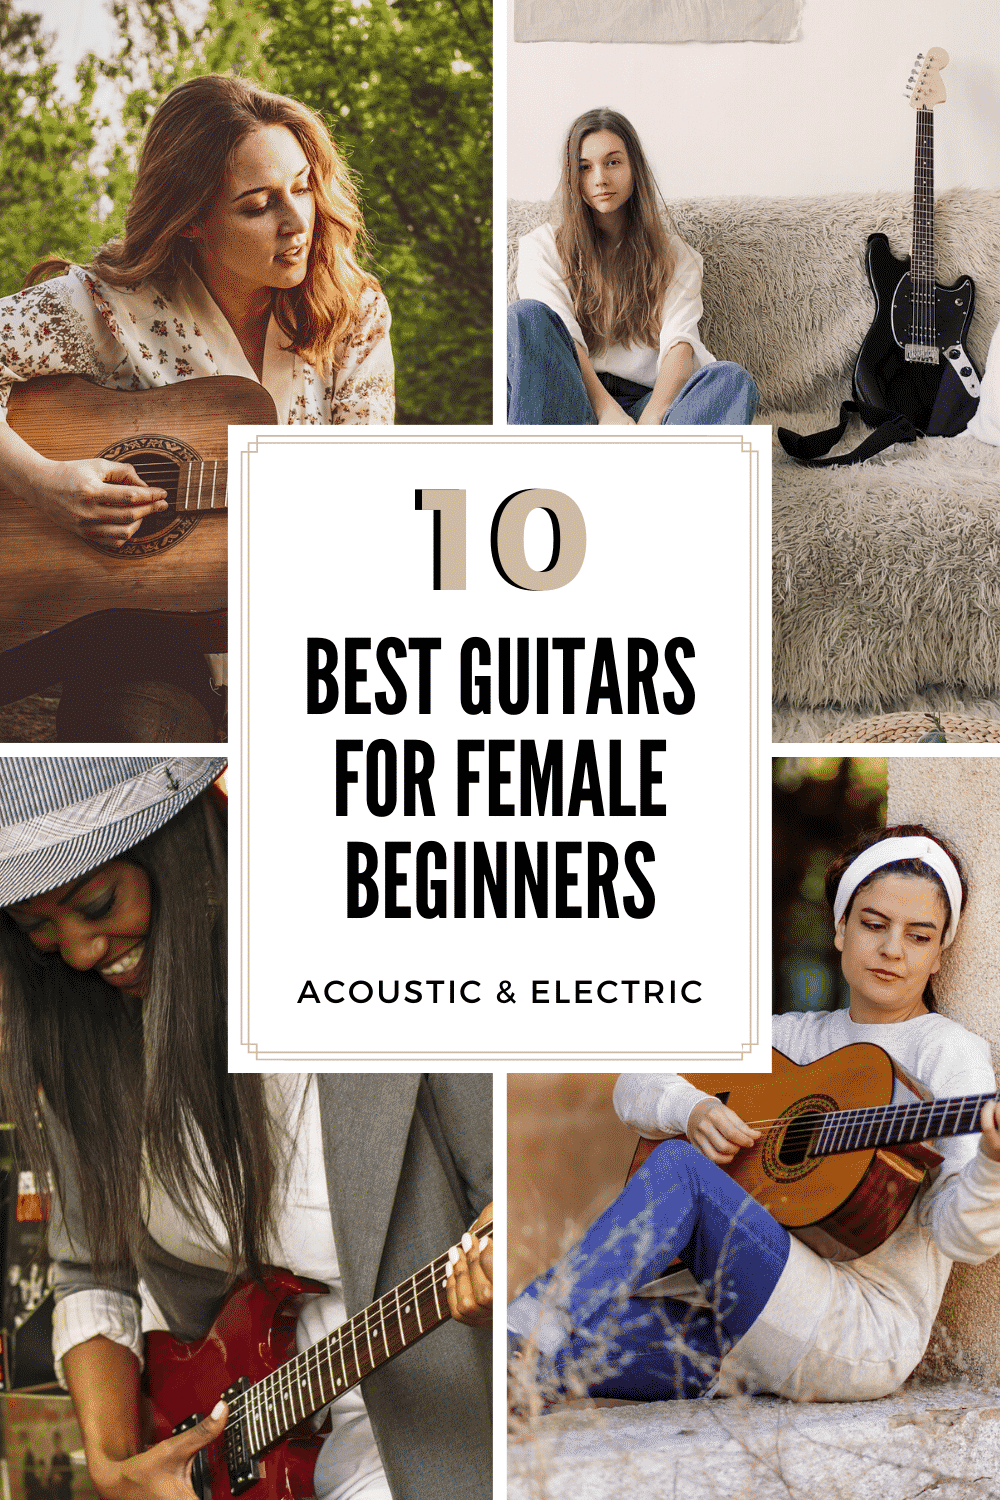 Best Guitars For Female Beginners